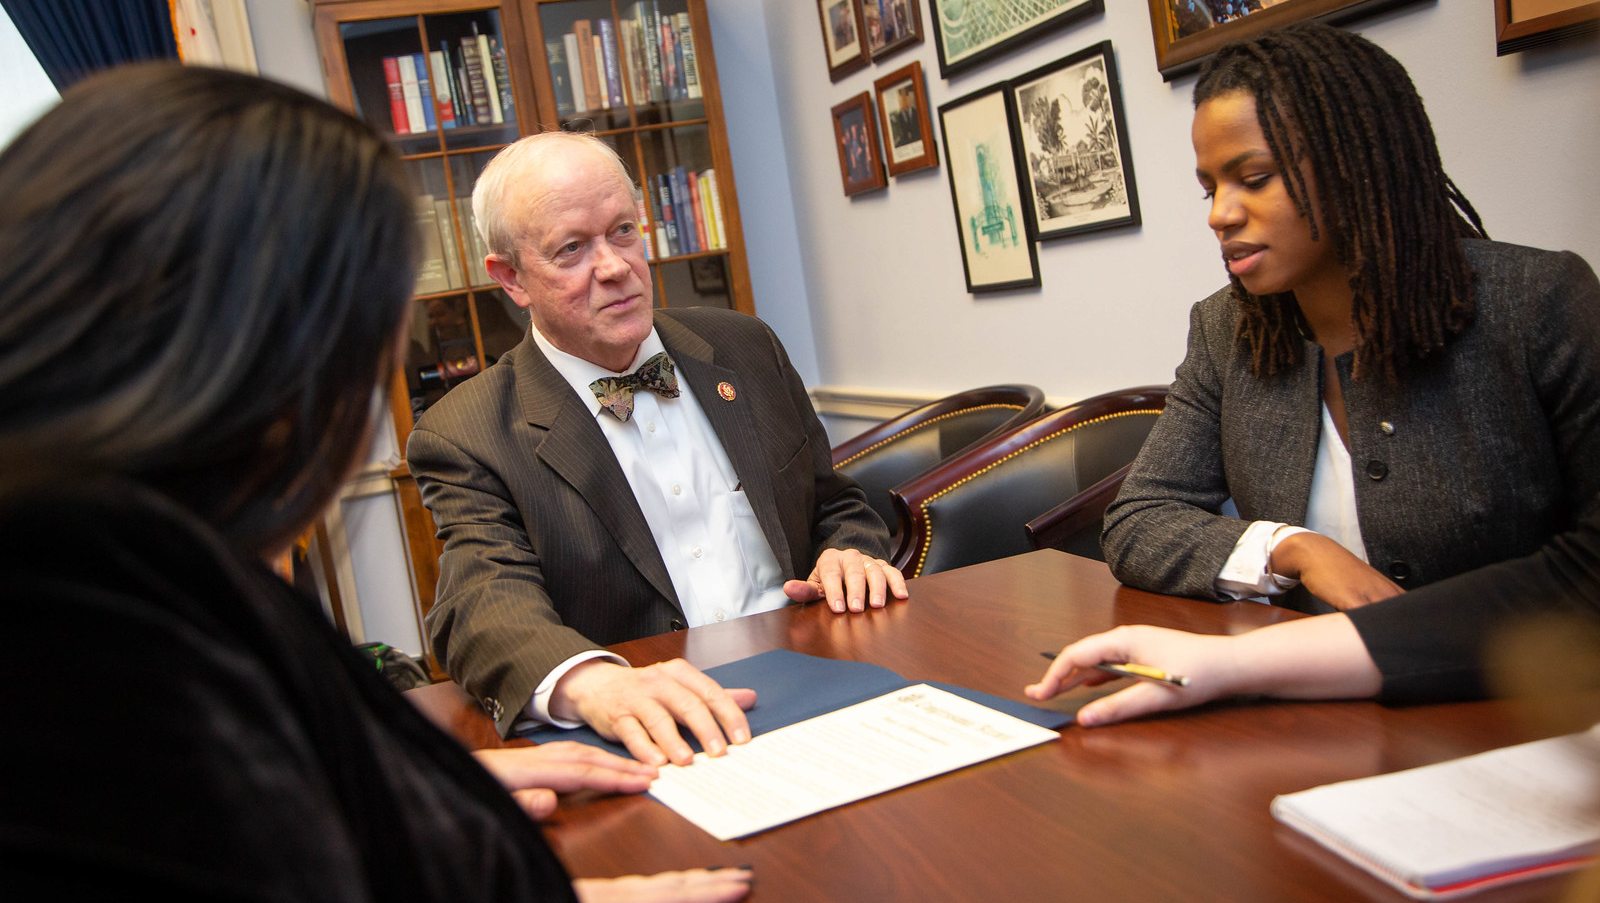 Rep. Jerry McNerney (D-CA) shares recognition in the congressional record of Brain Awareness Week with SfN advocates, including 2019 Early Career Policy Ambassador Enitan Marcelle (right).